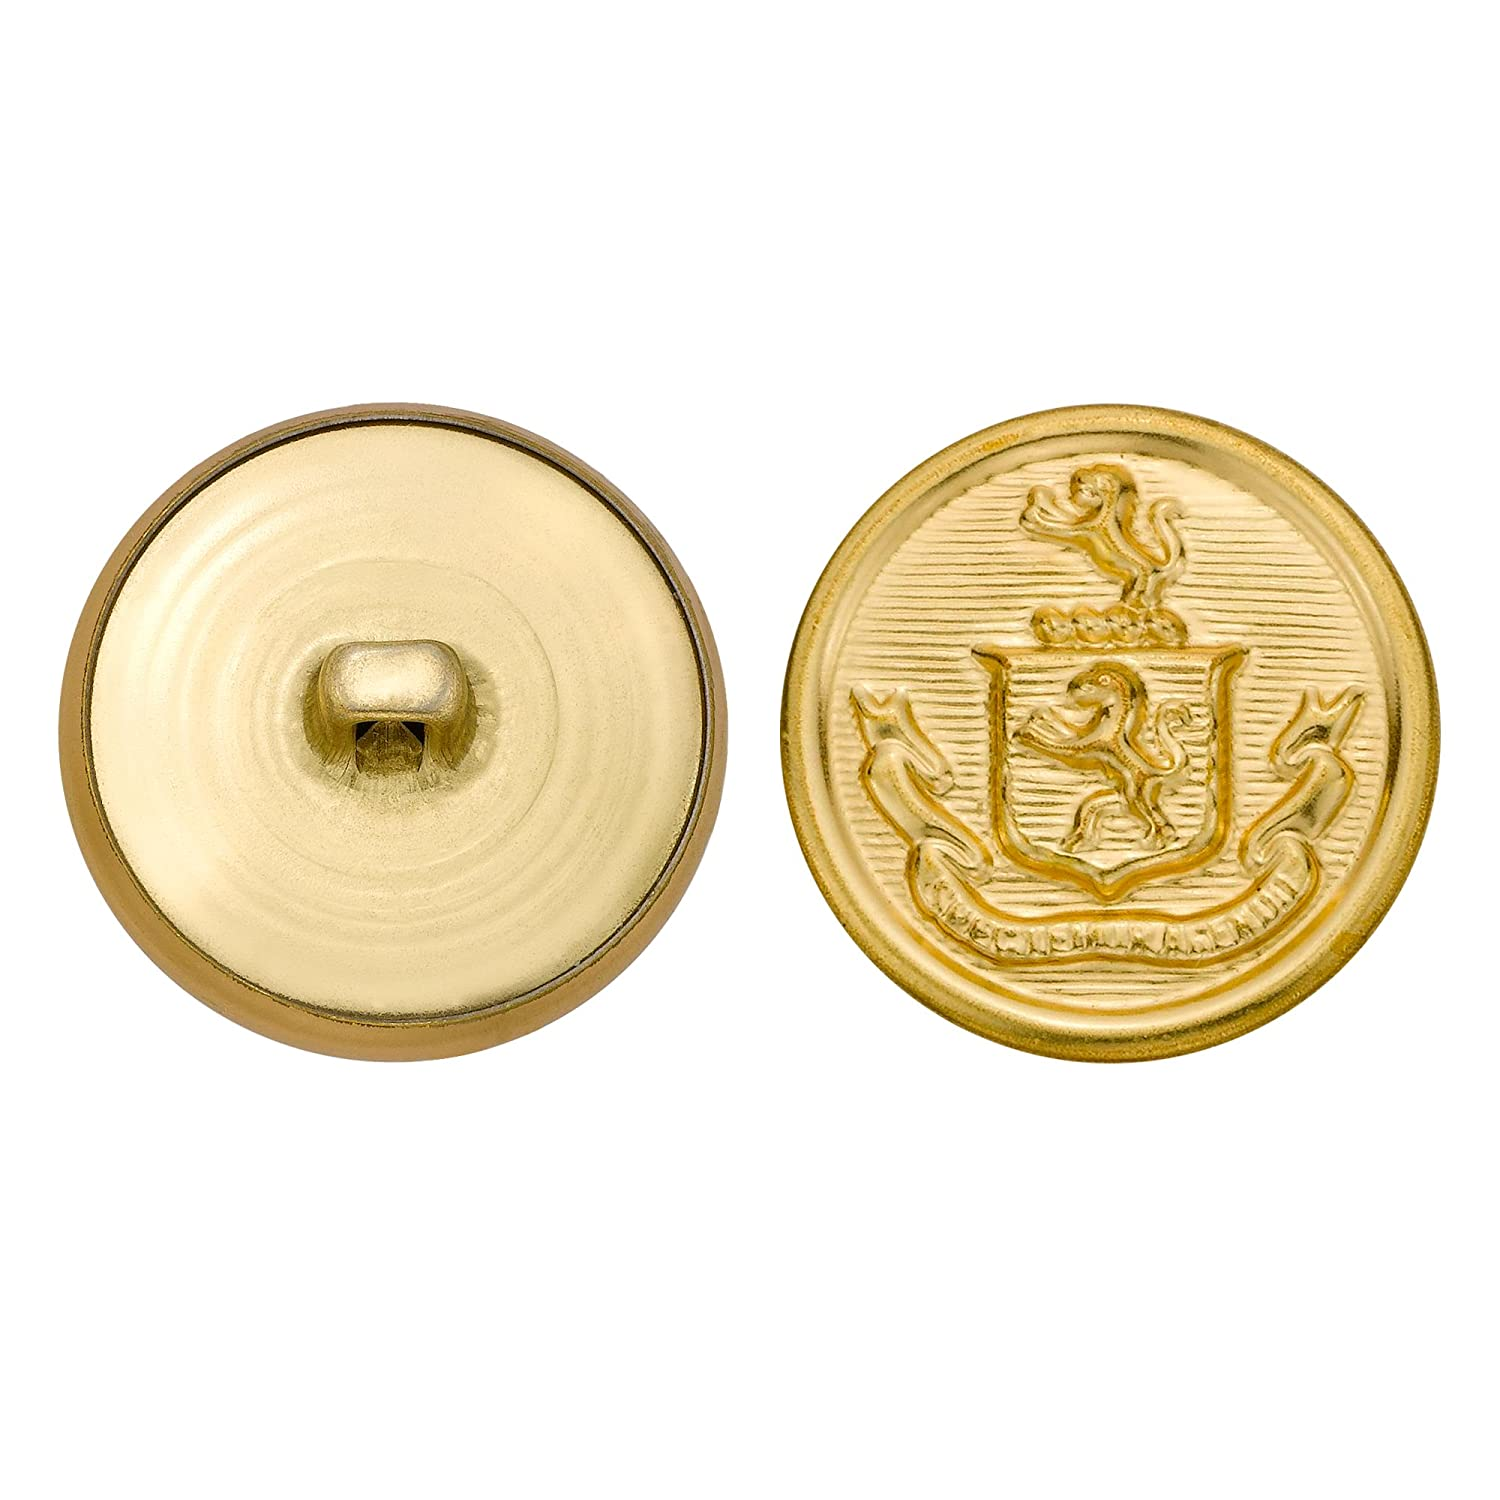 Size 40 Ligne 36-Pack C/&C Metal Products Corp C/&C Metal Products 5257 Crest Metal Button Gold